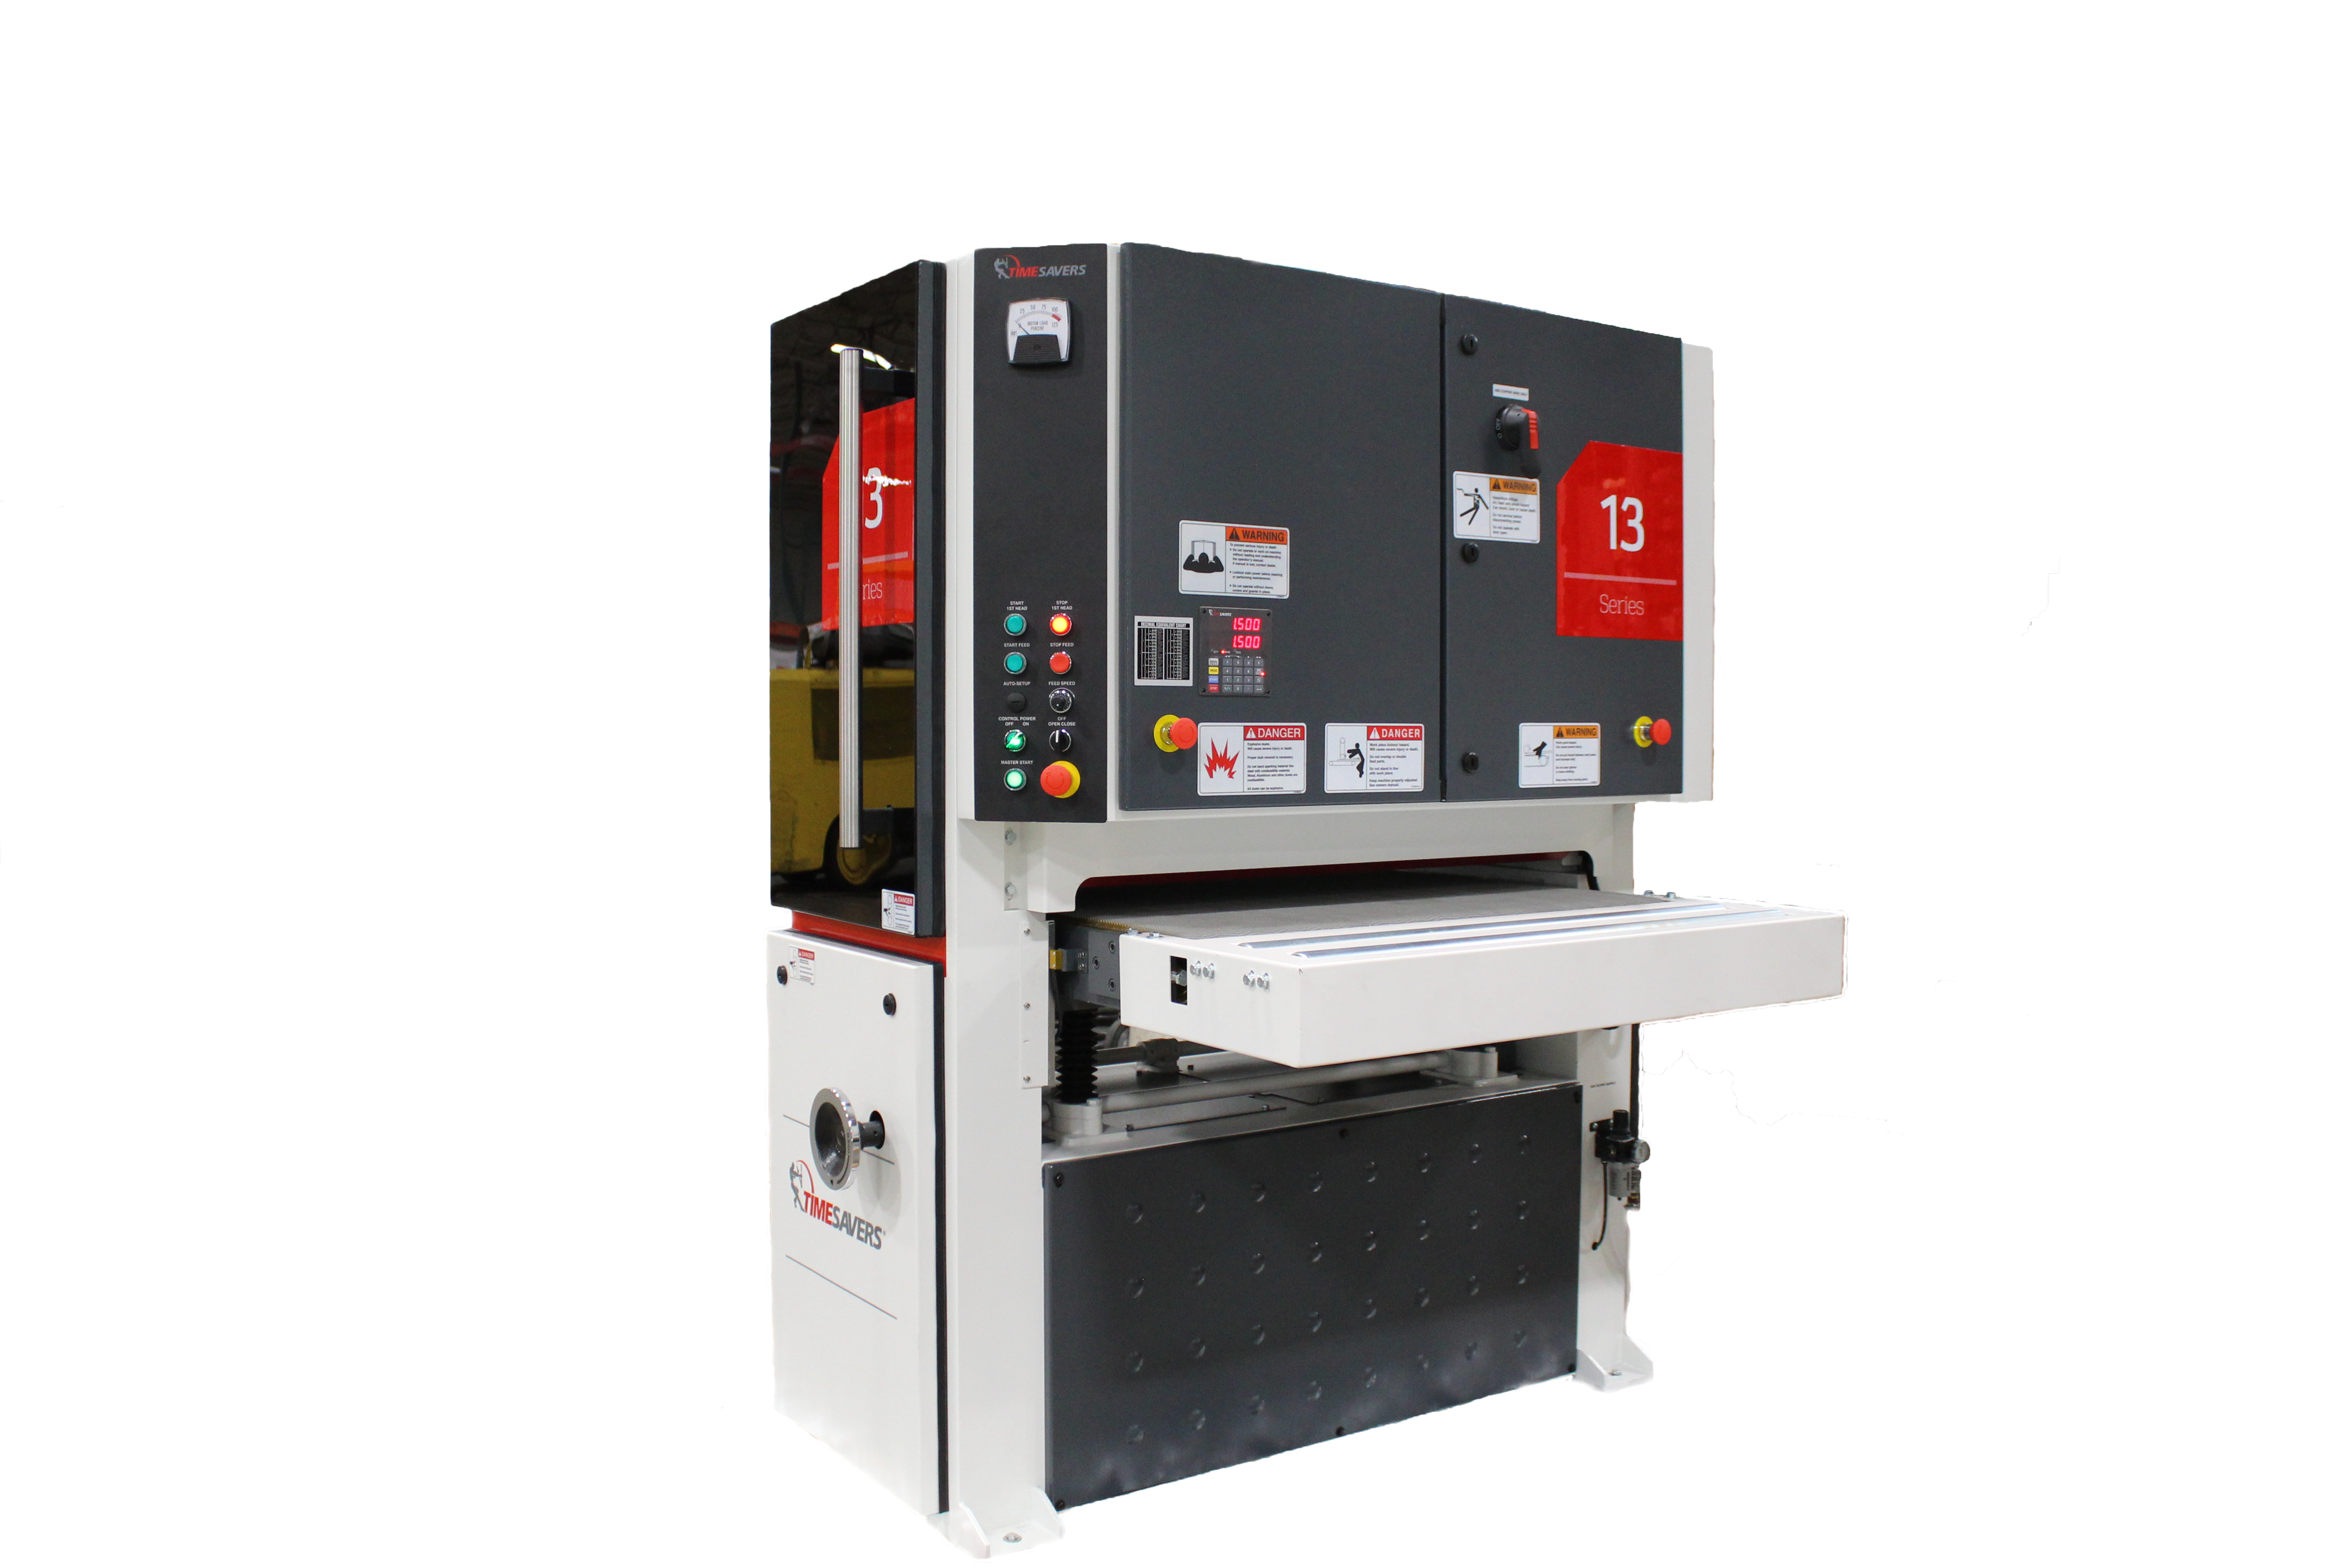 Timesavers 13 Series woodworking machine